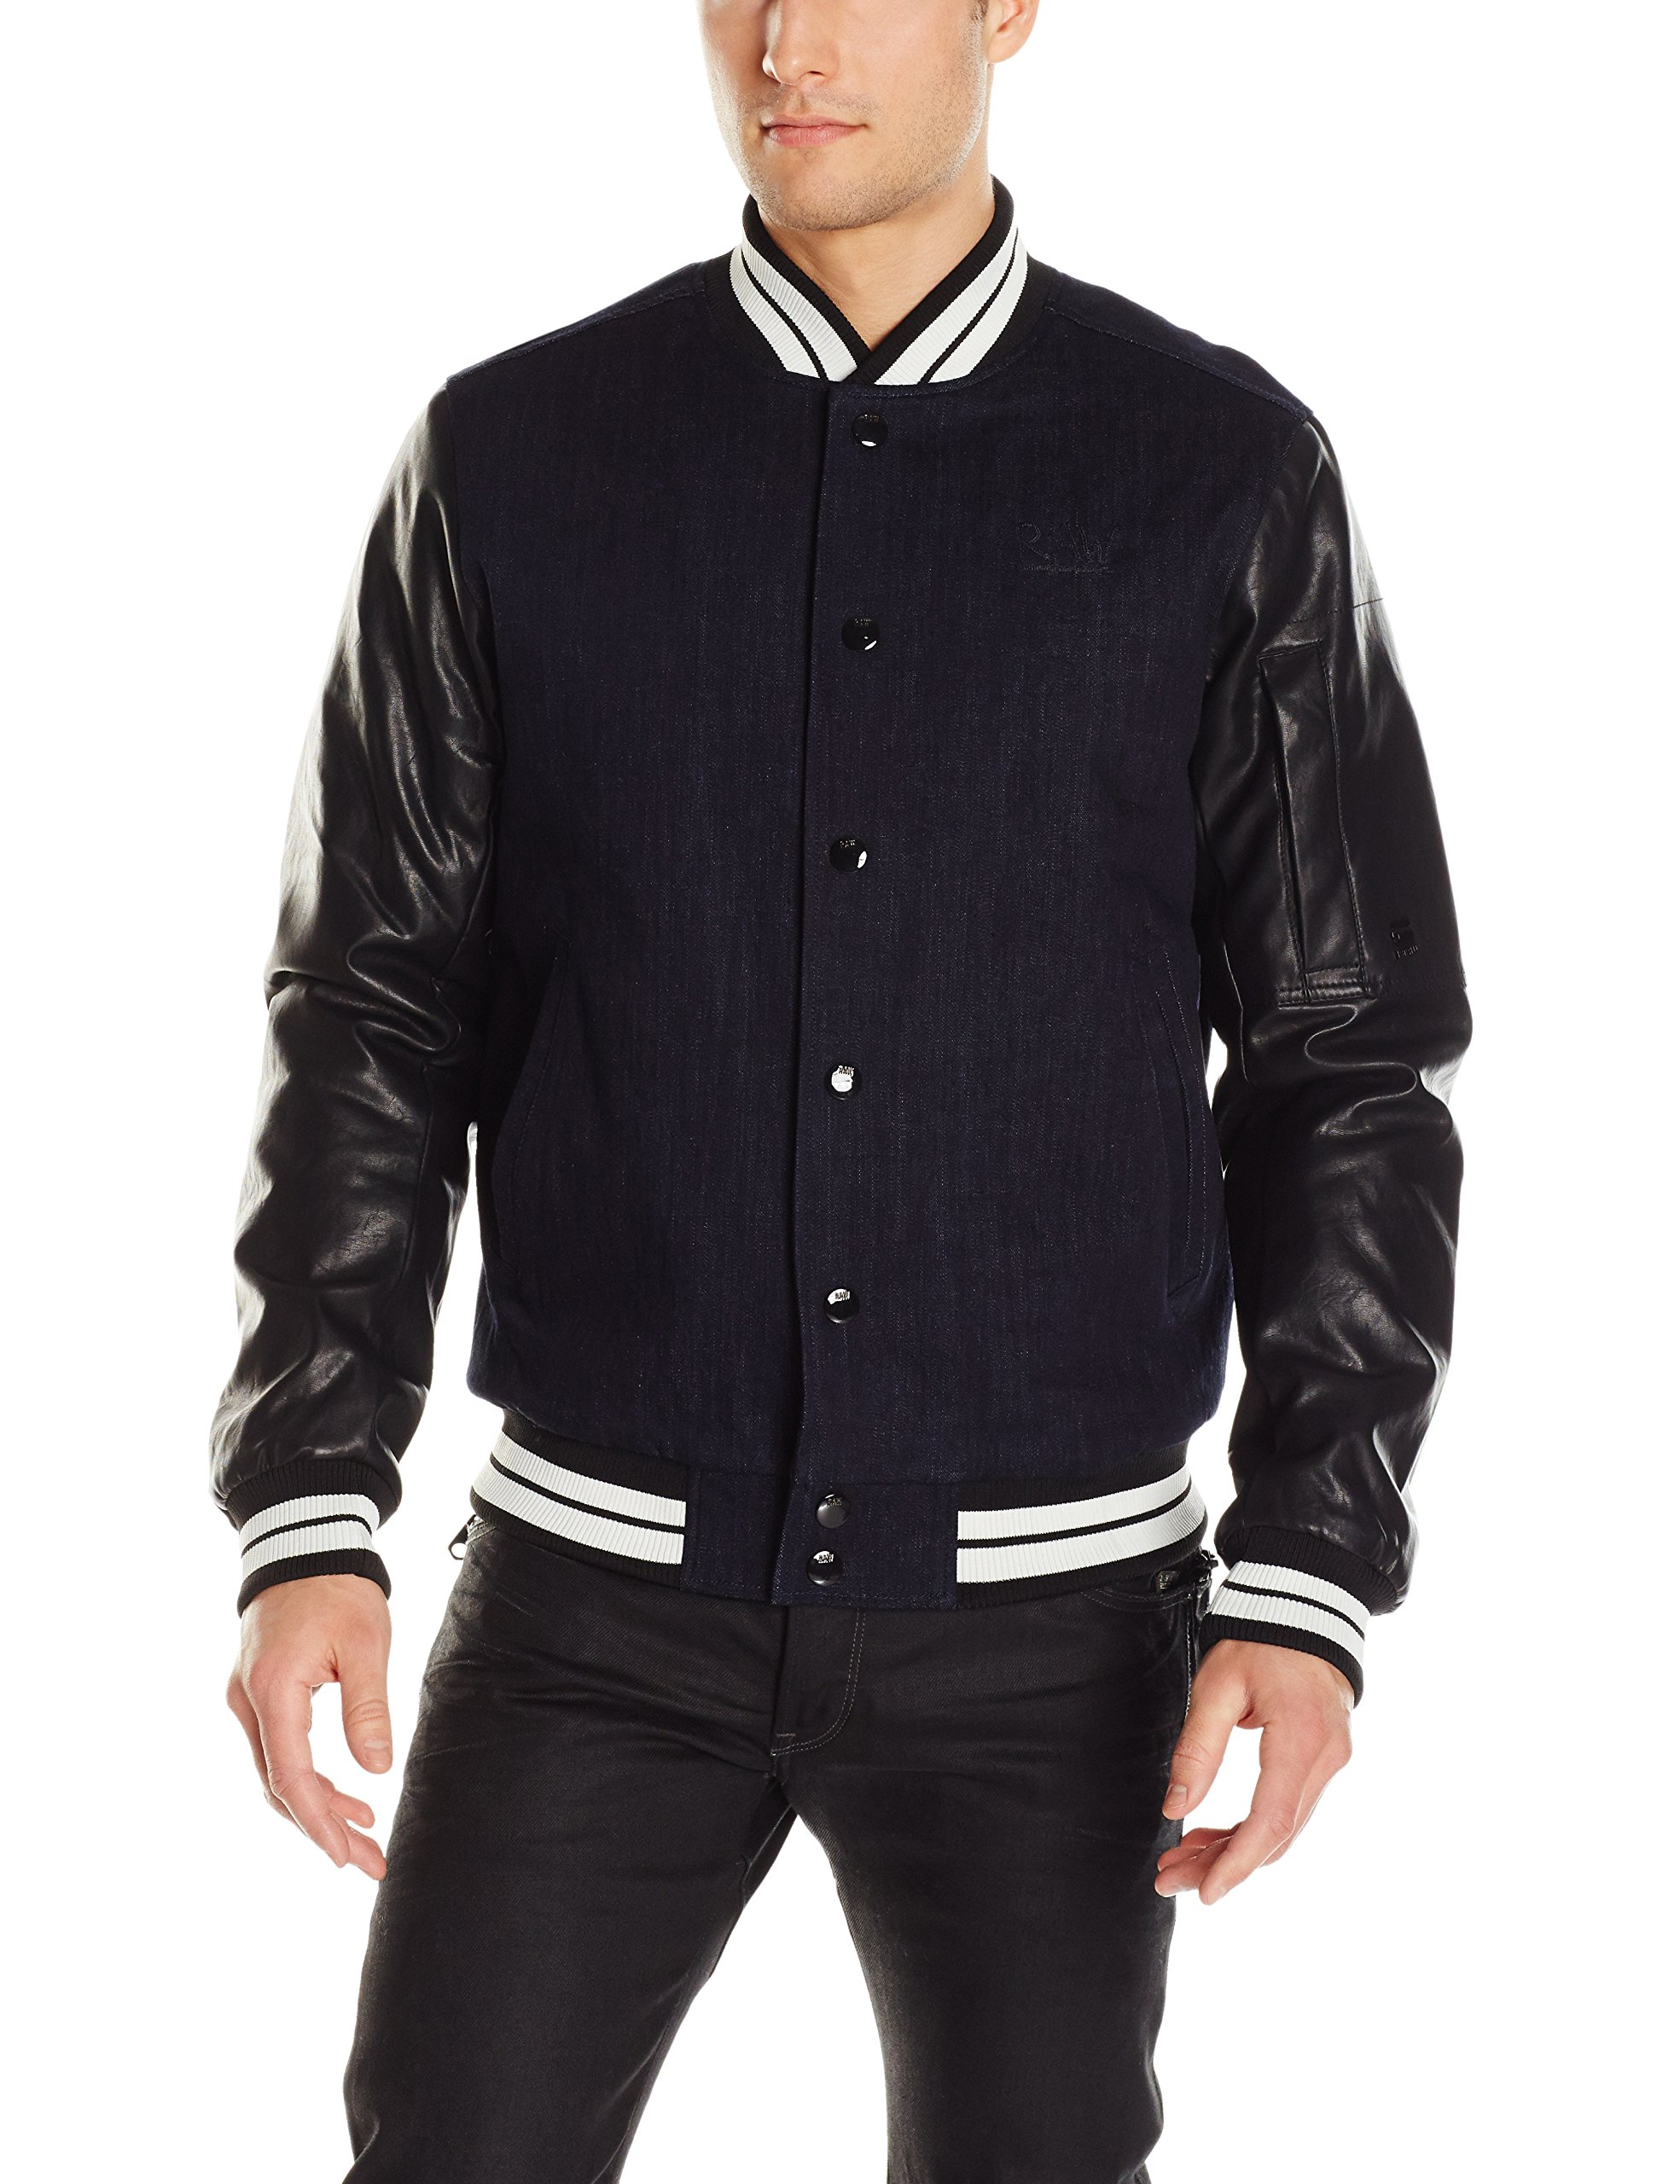 G-Star Raw Men's Batt Bomber Sports Jacket